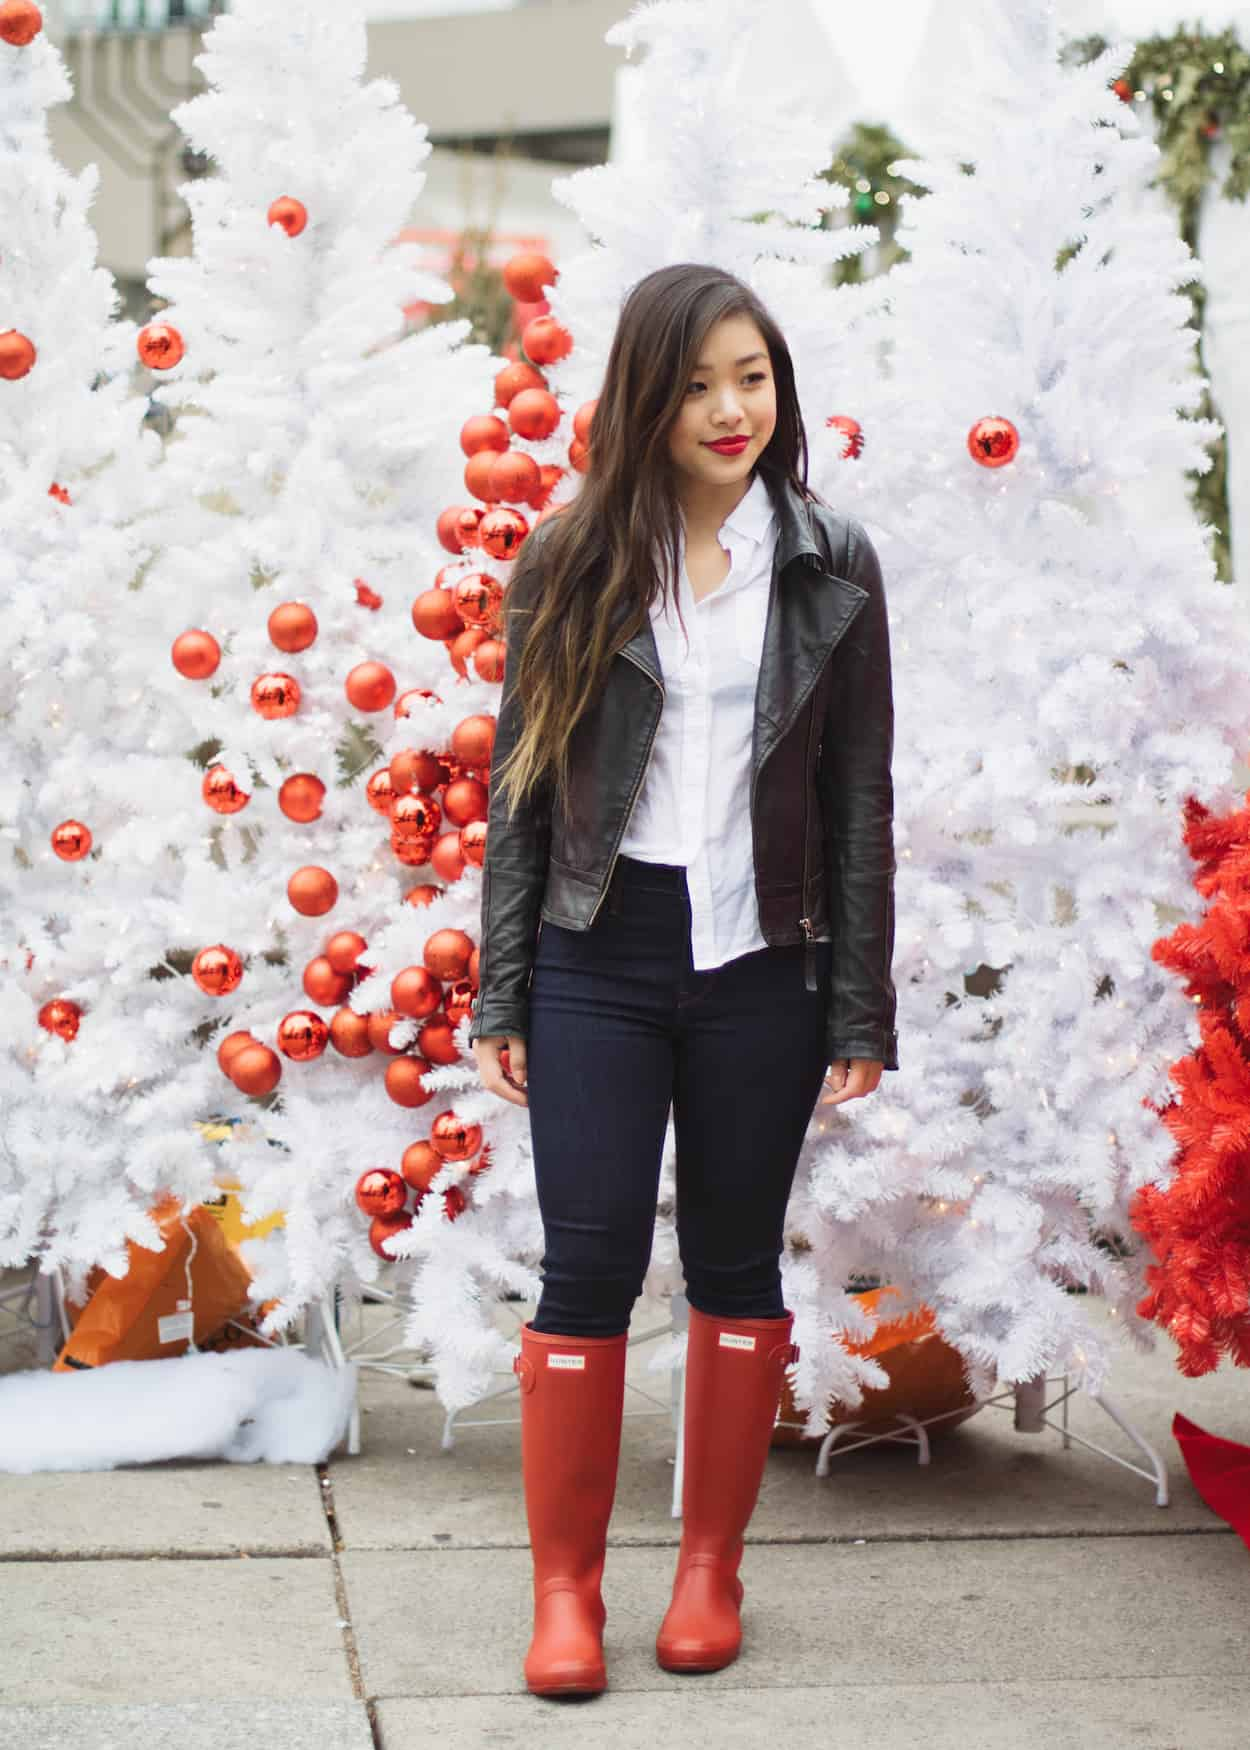 How to style red Hunter boots for winter